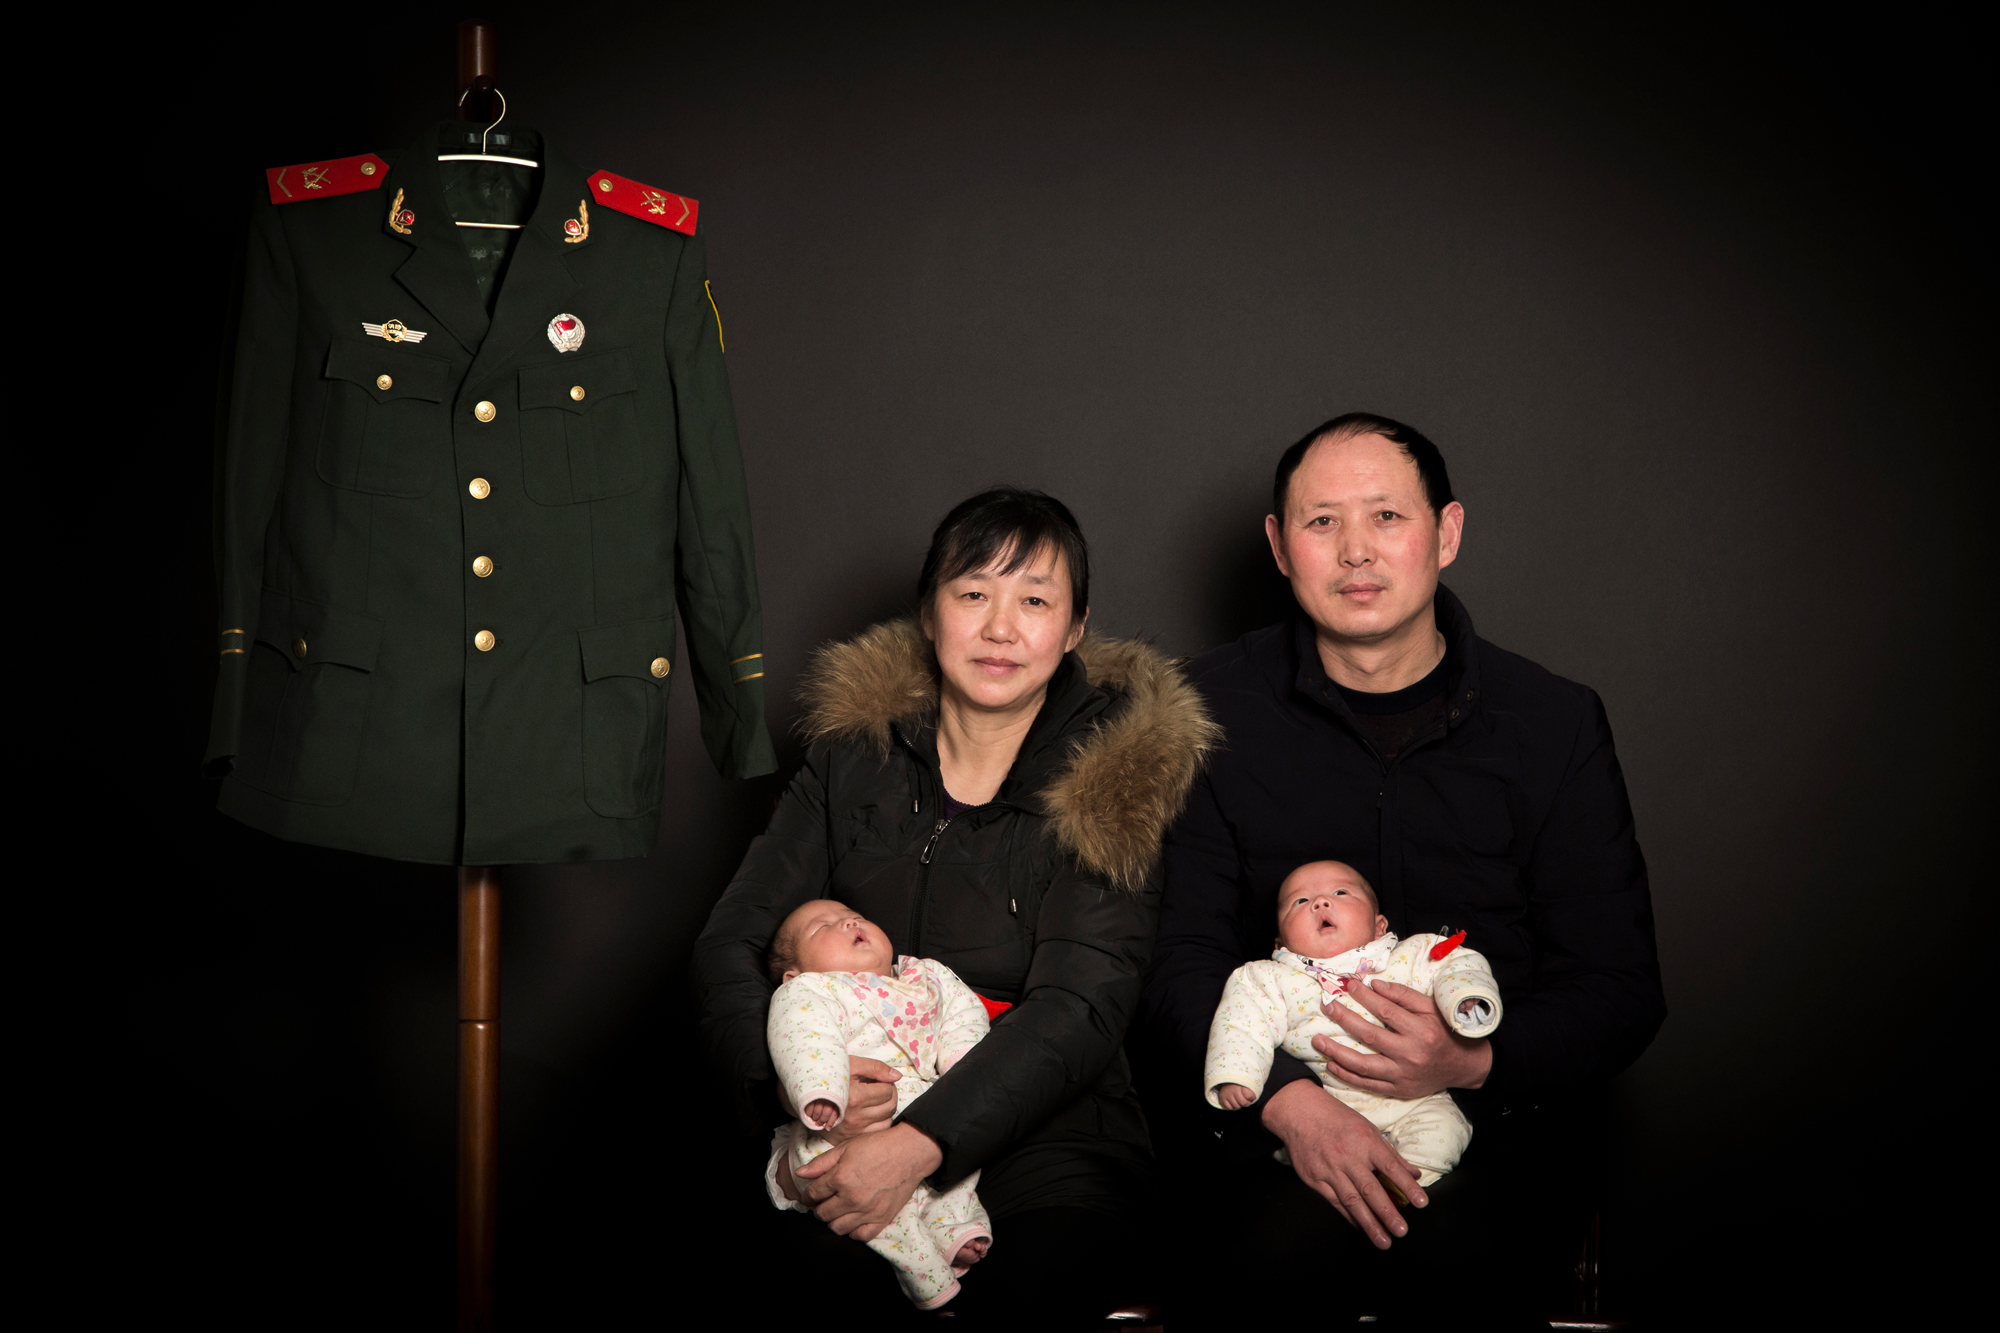 Zhiying and Fangguo hold the twin babies to pose for a family photo with Ti's military uniform, at their home in Suizhou, February 10, 2018.